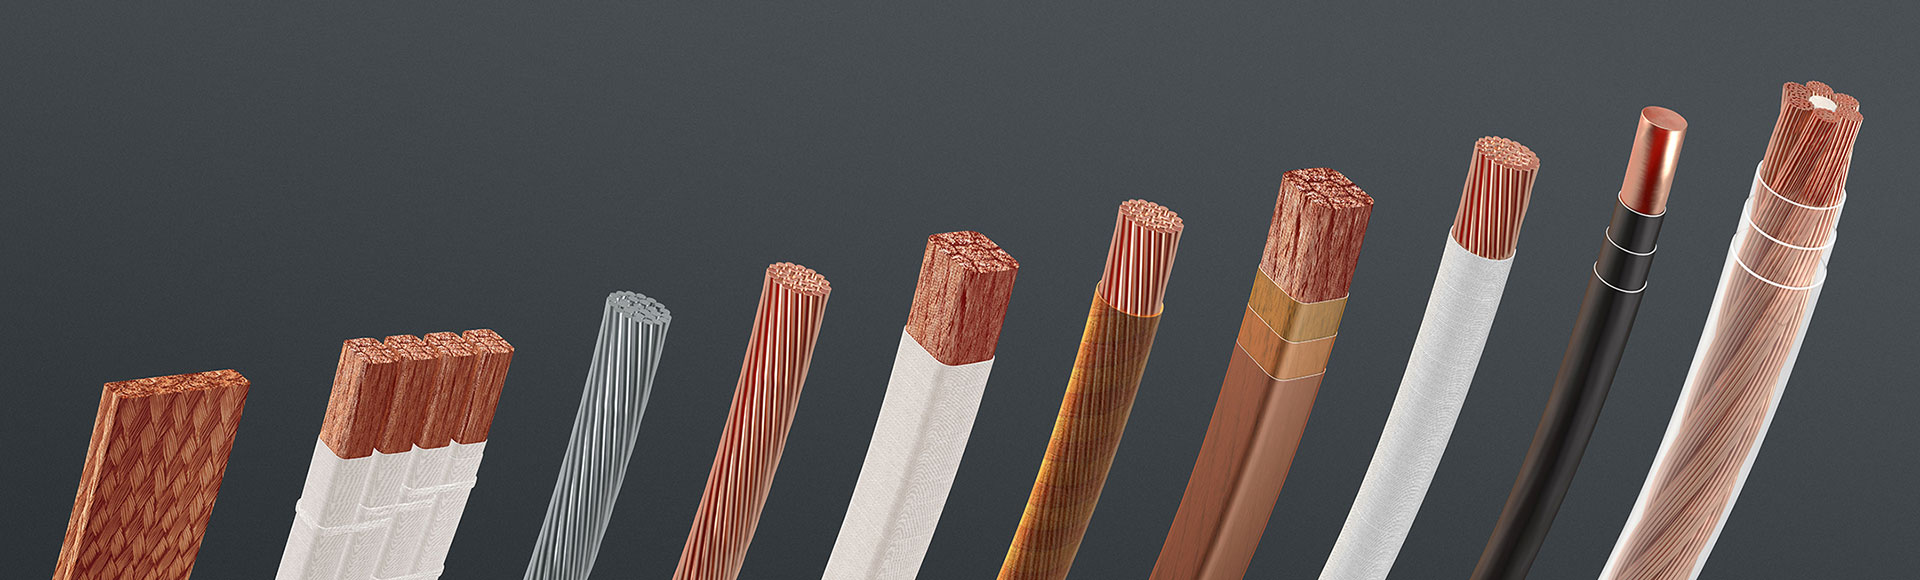 Enamelled copper wire and hf litz wire | PACK LitzWire